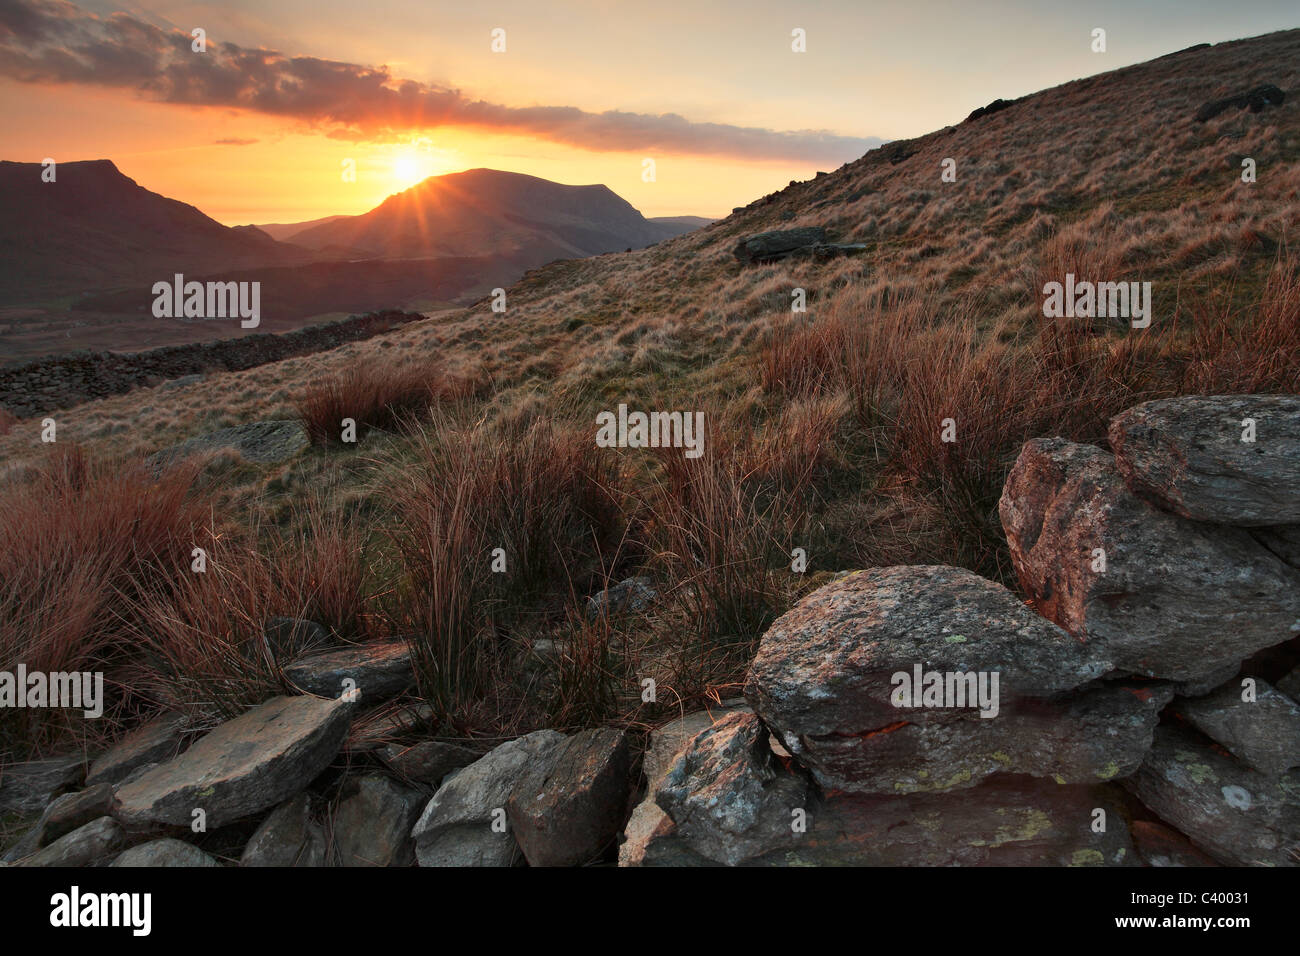 Sun sets behind Craig Cwm Silyn as seen from the Snowdon Ranger path near Rhyd Ddu in Gwynedd, Wales - Stock Image